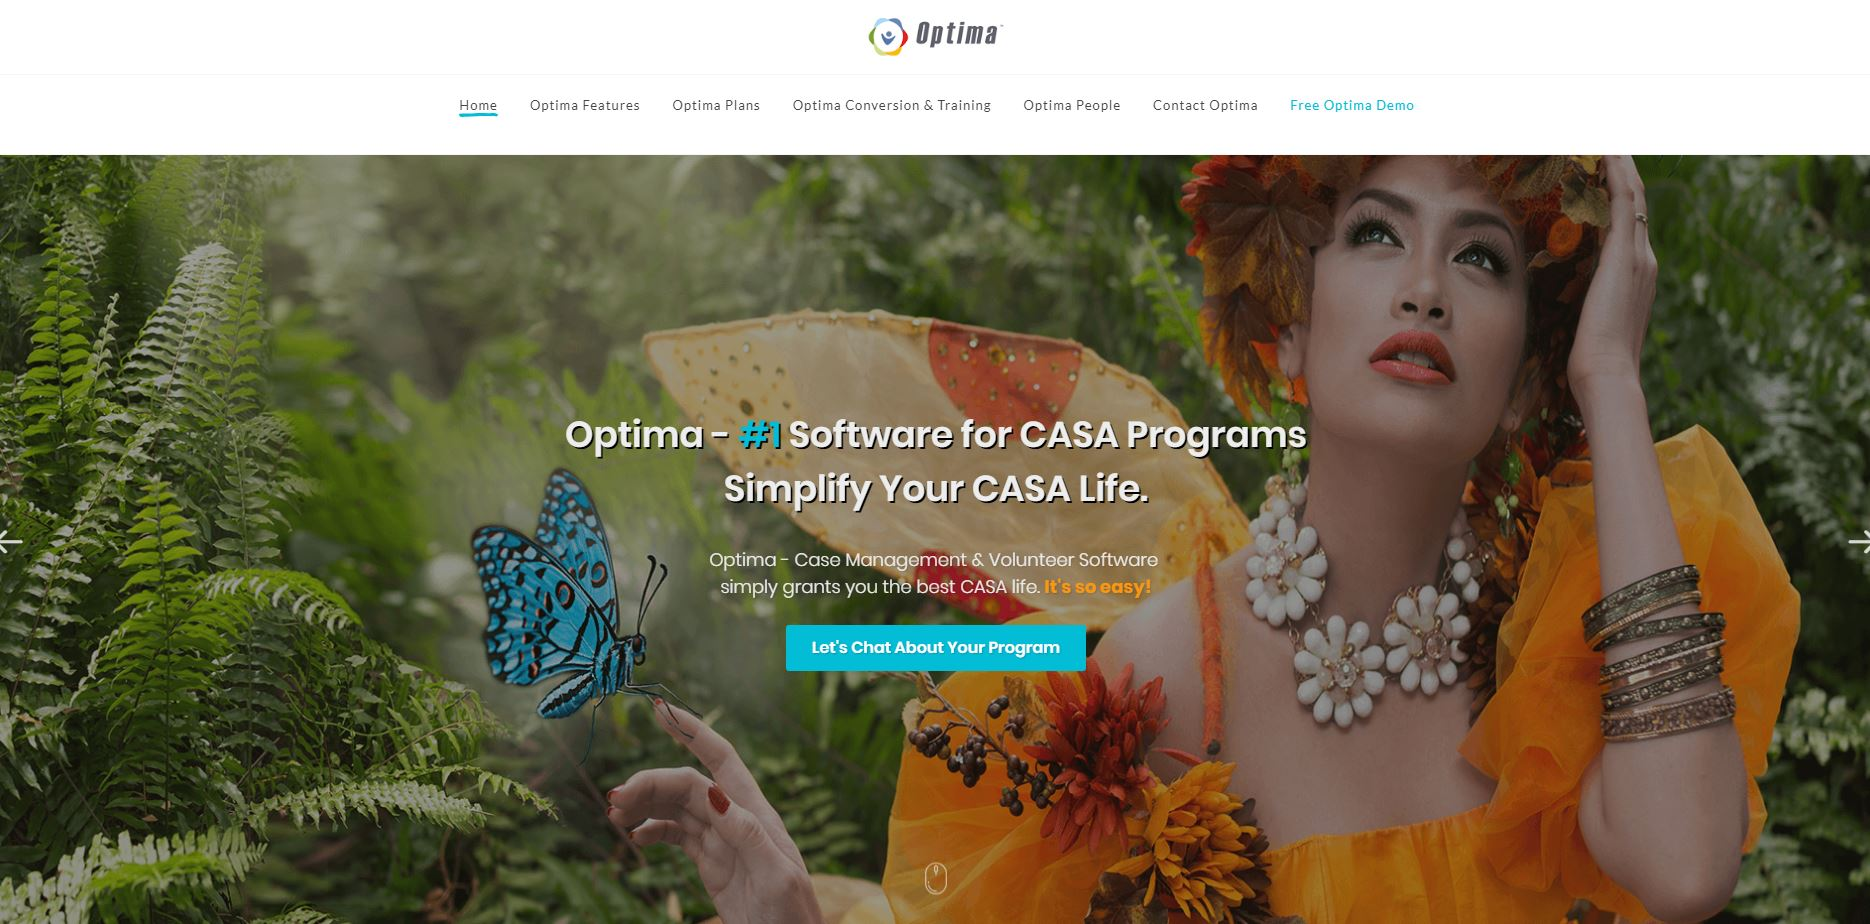 website design example for Optima CASA software by Evinto Solutions in Queen Creek Arizona